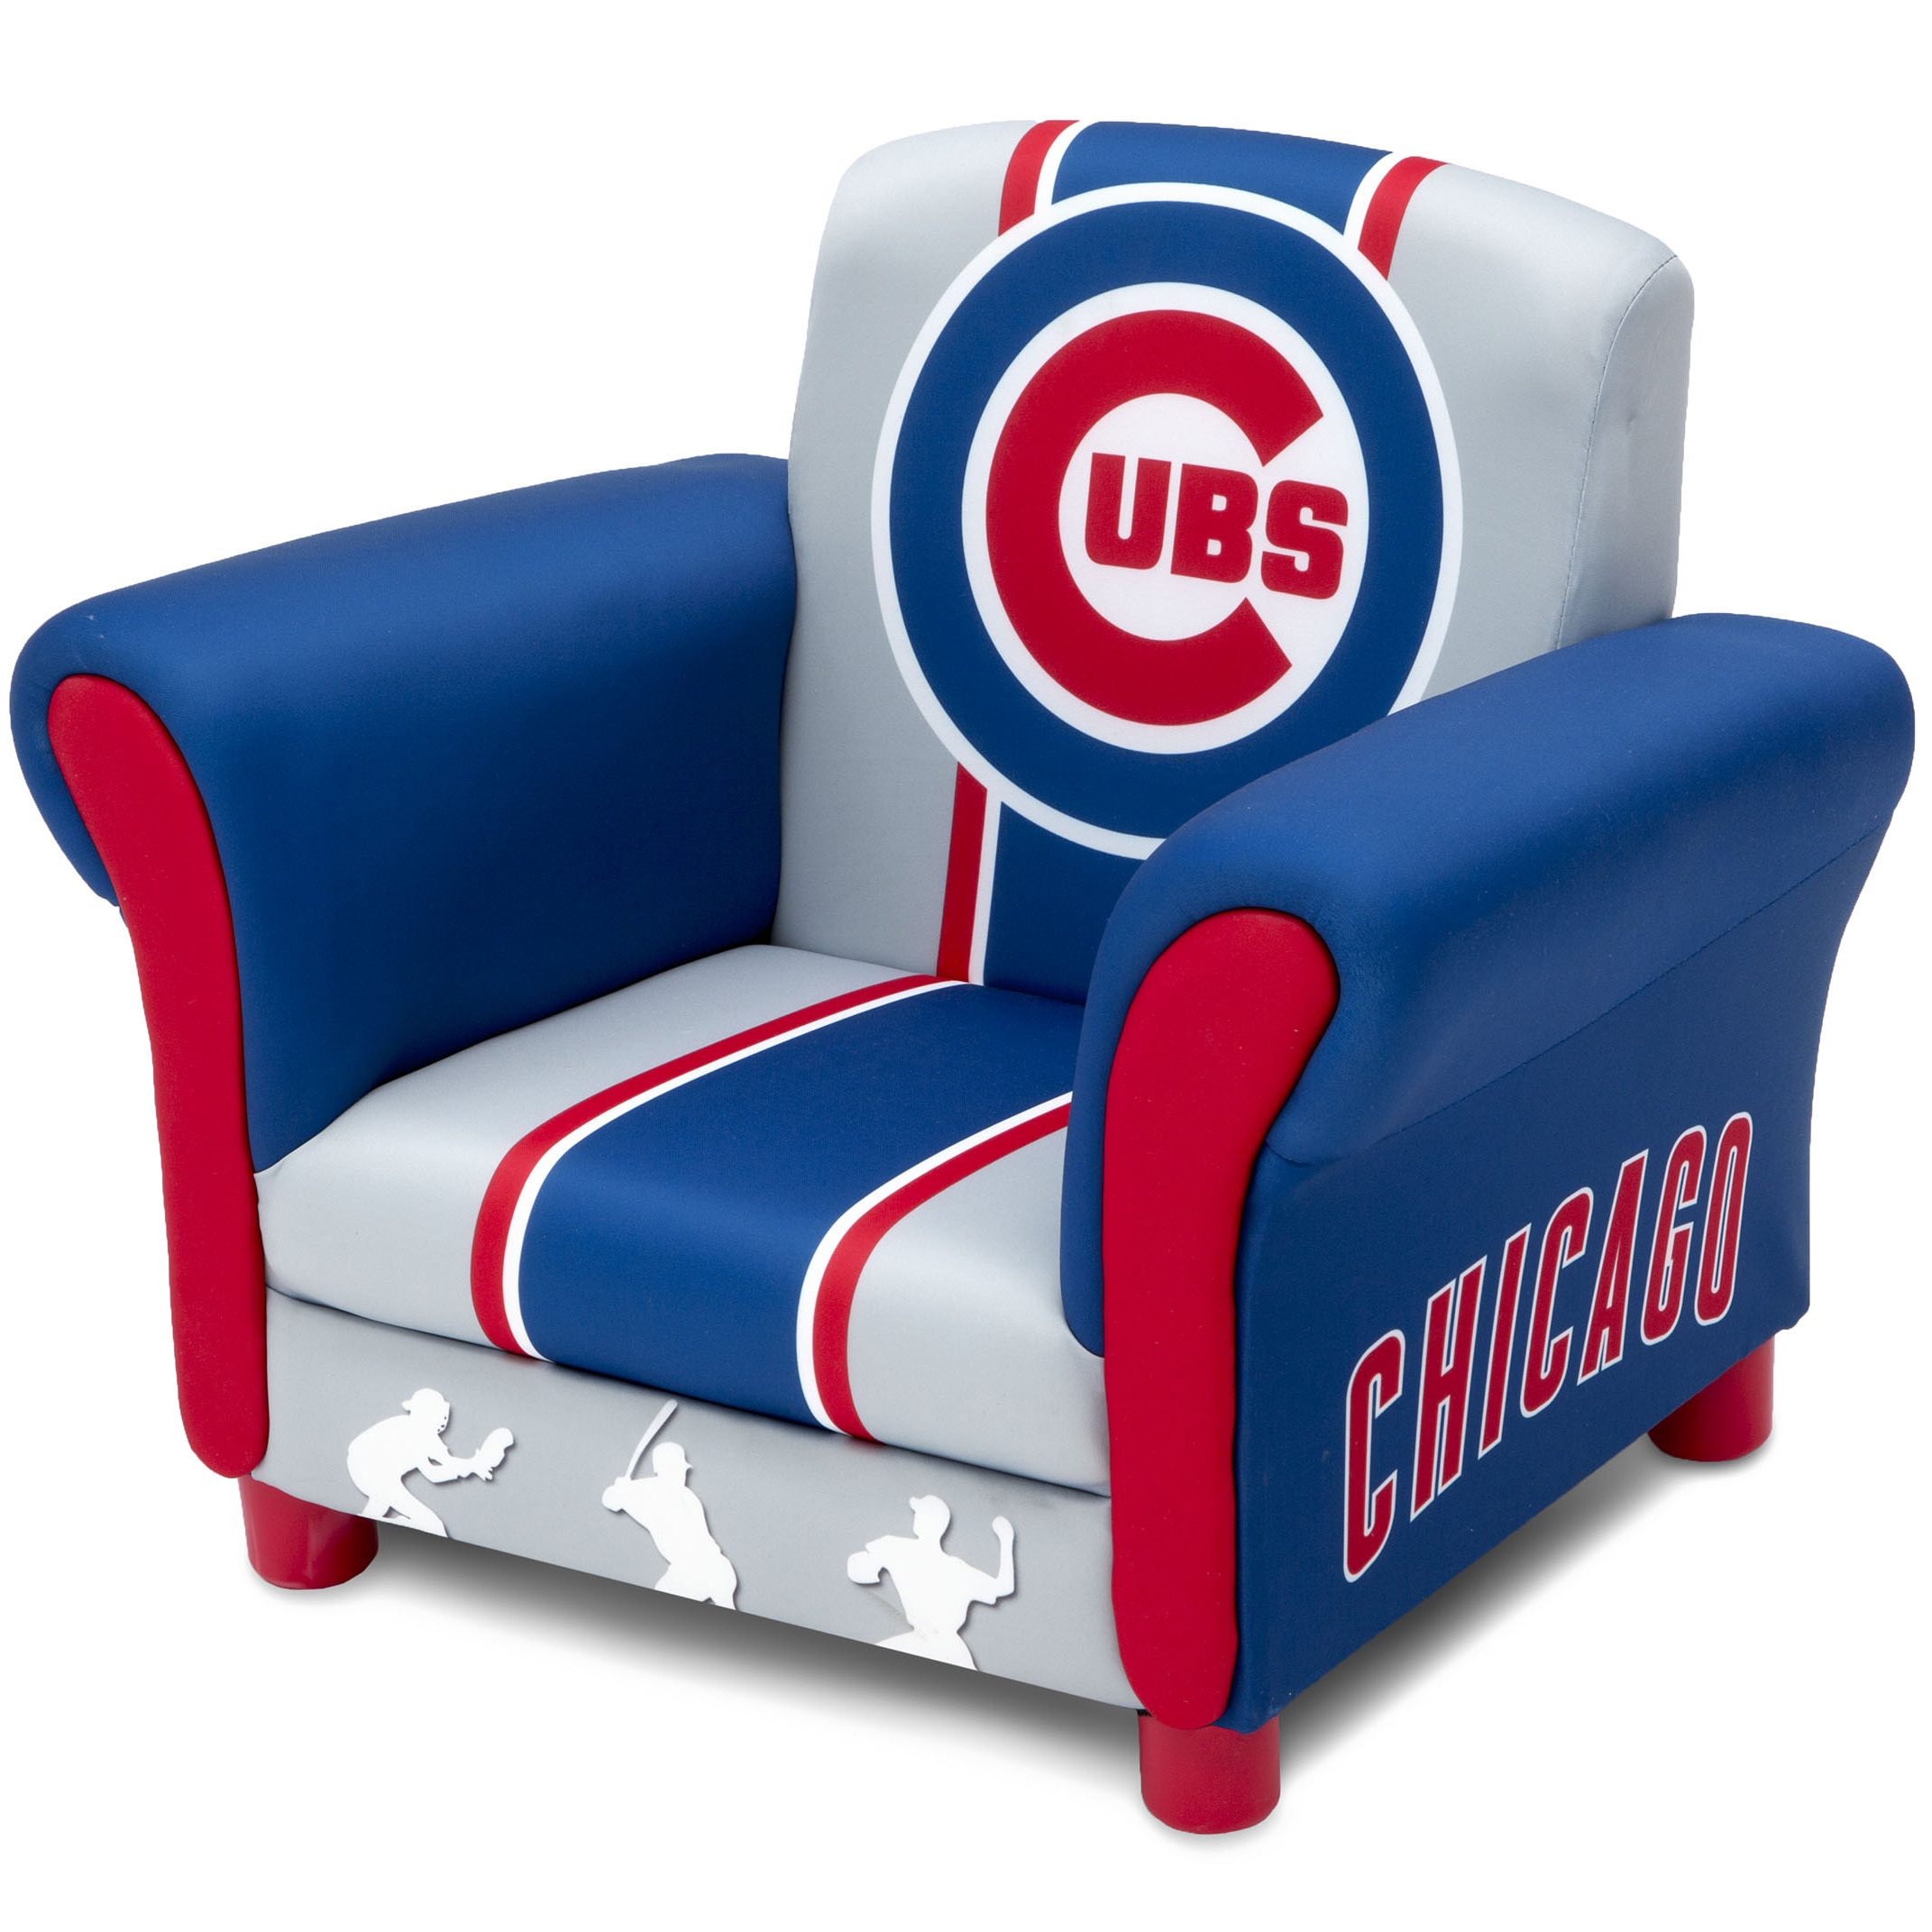 Toddler Chairs Upholstered Details About Chicago Cubs Kids Upholstered Chair Children Toddler Furniture Baseball Cubbies